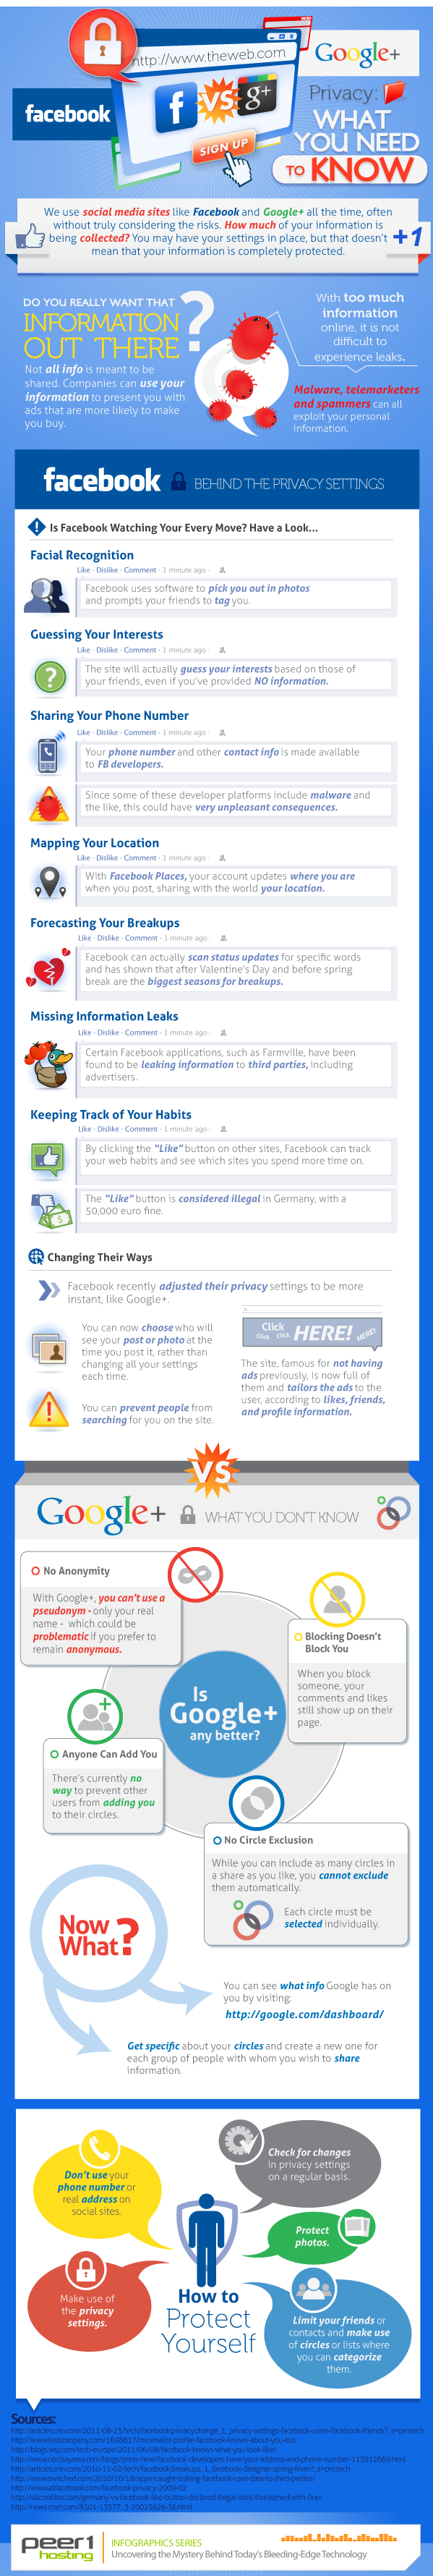 Facebook vs Google Plus Privacy Comparison Infographic